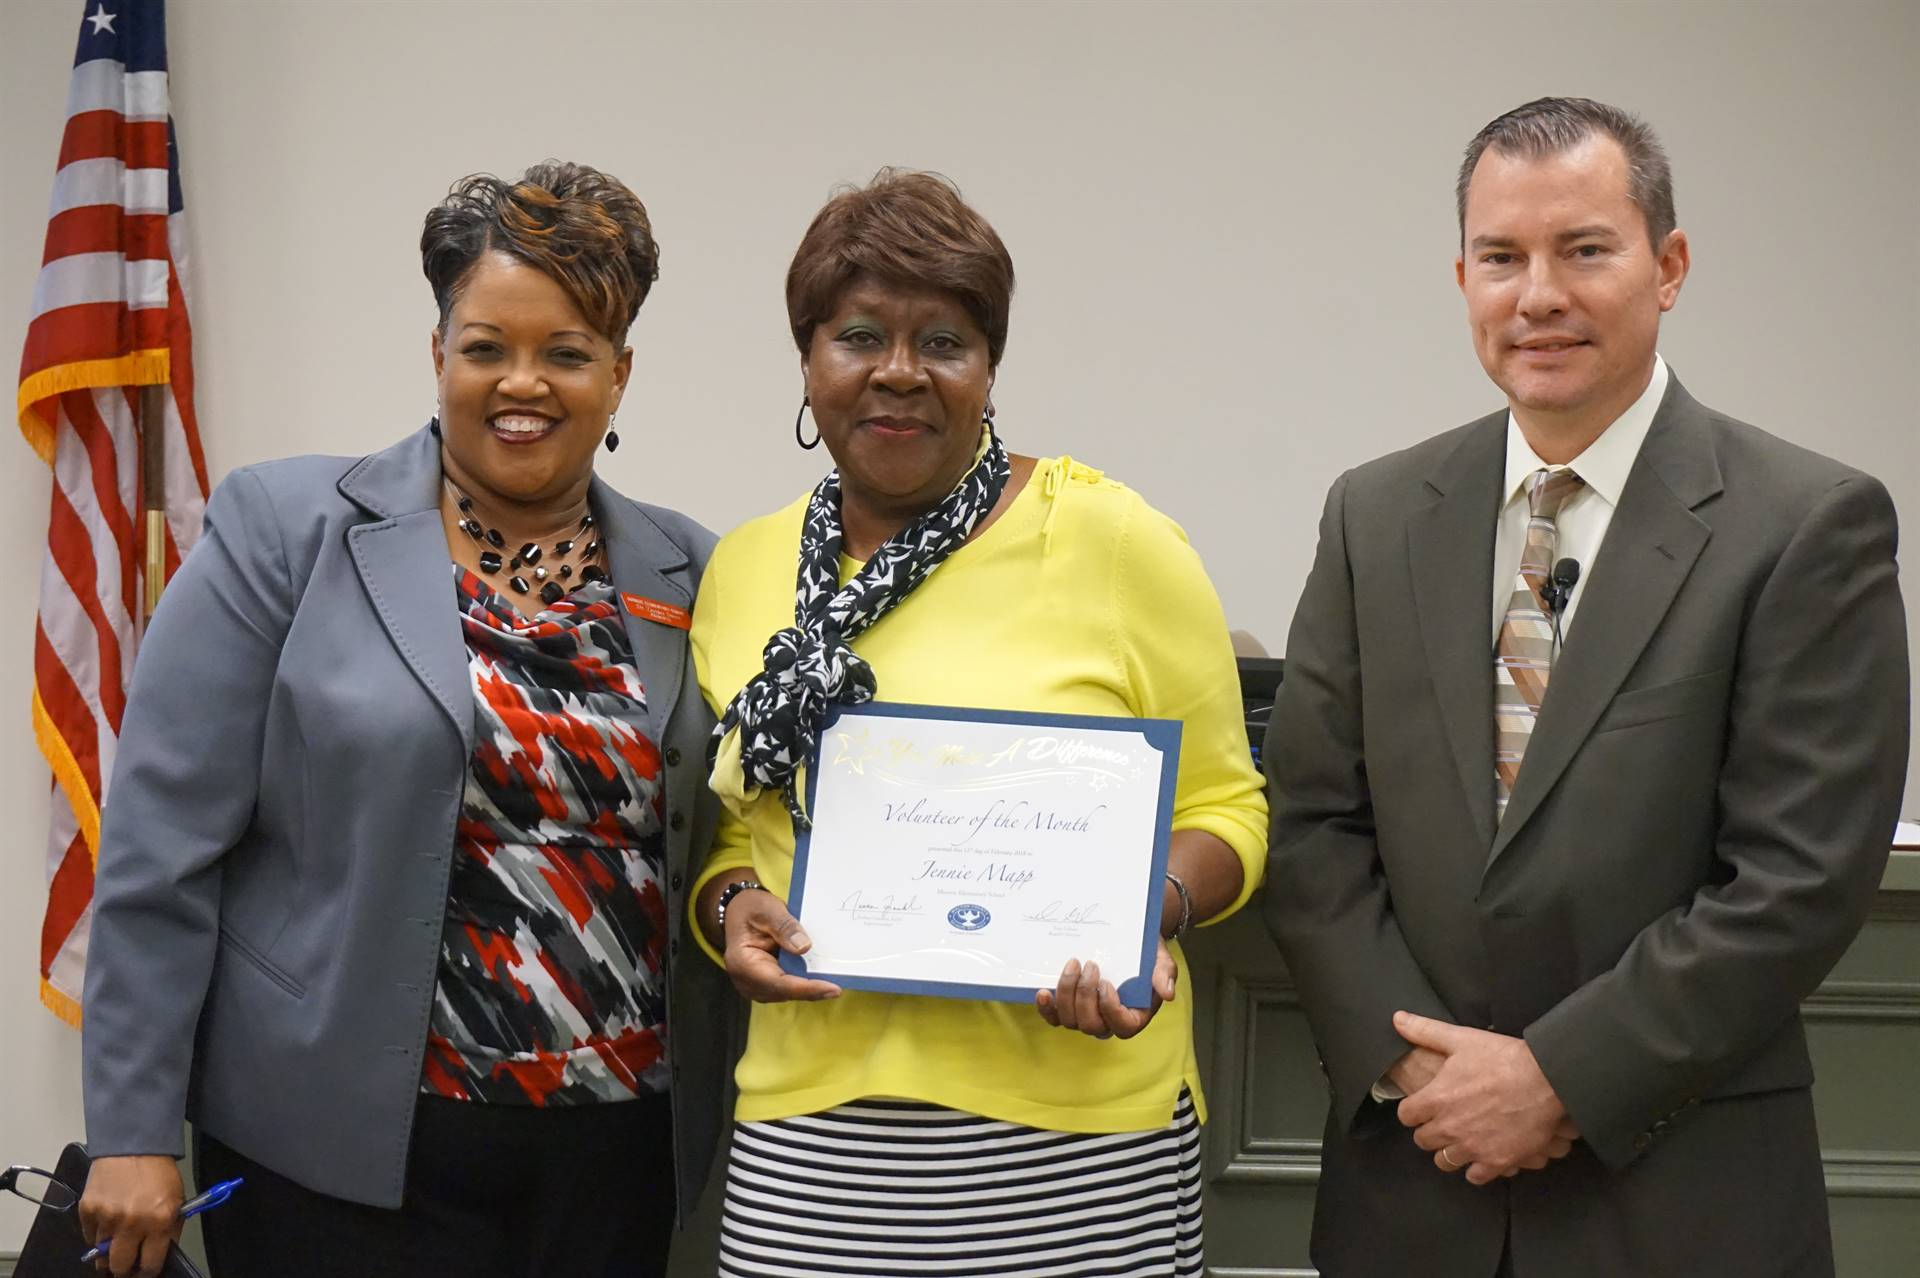 MES Volunteer of the Month